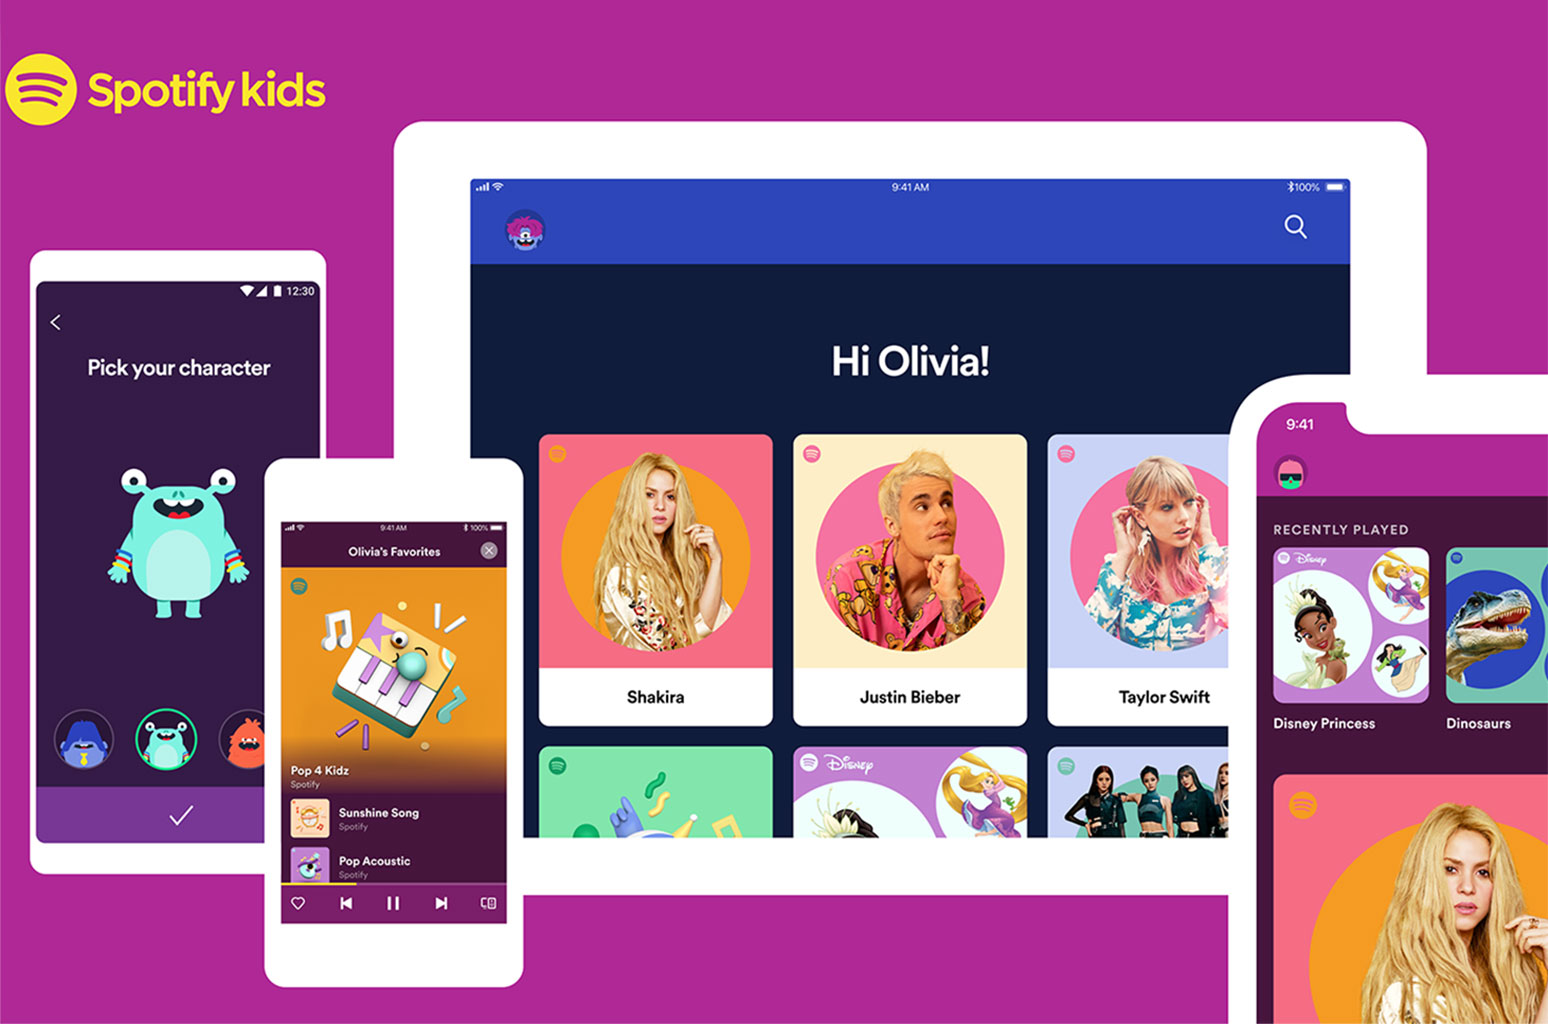 spotify-kids-devices-2020-billboard-1548-1587652397